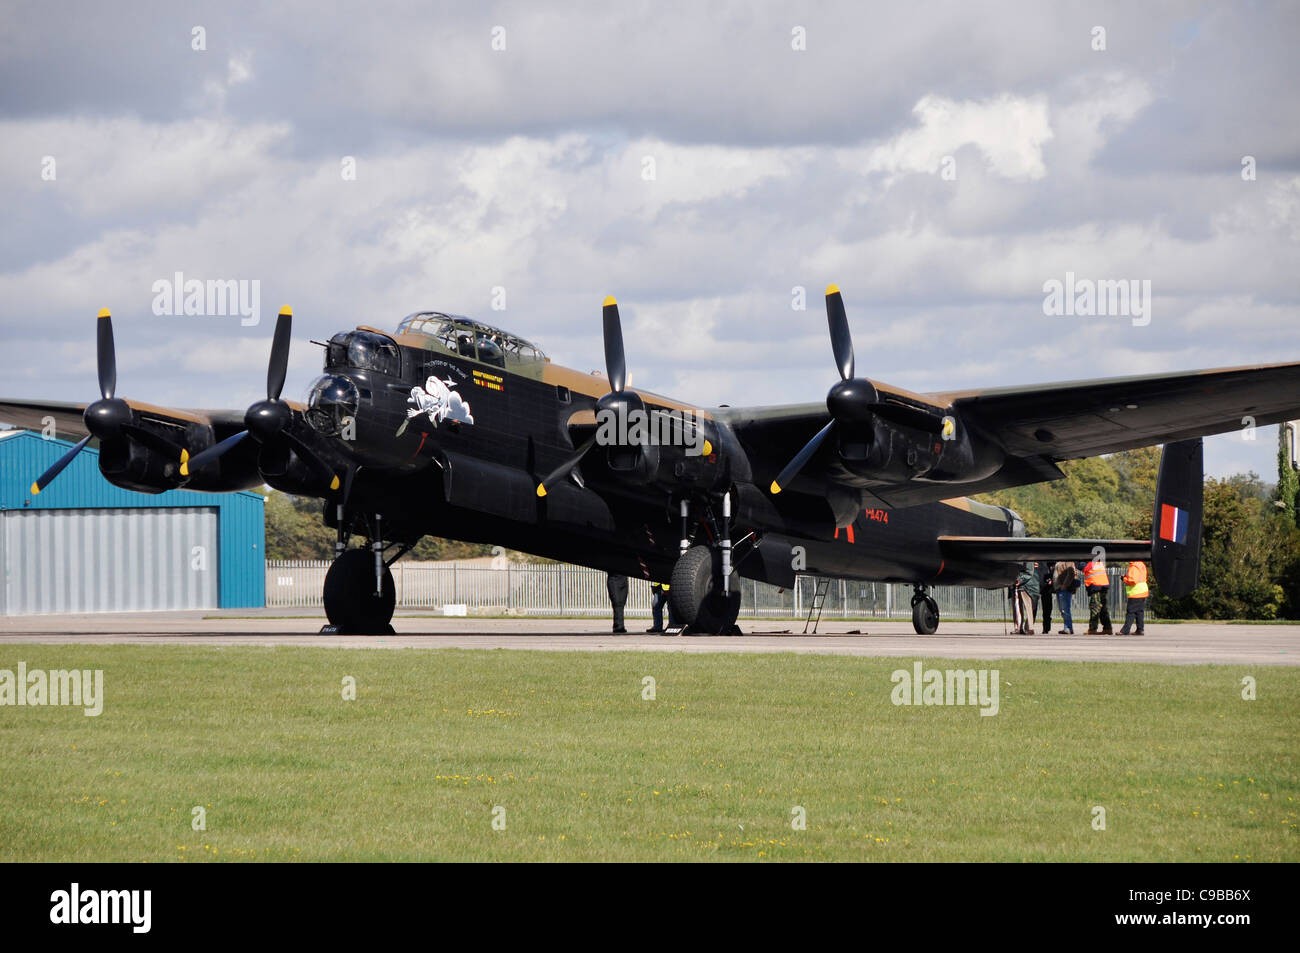 Avro Lancaster at Kemble Airfield - Stock Image